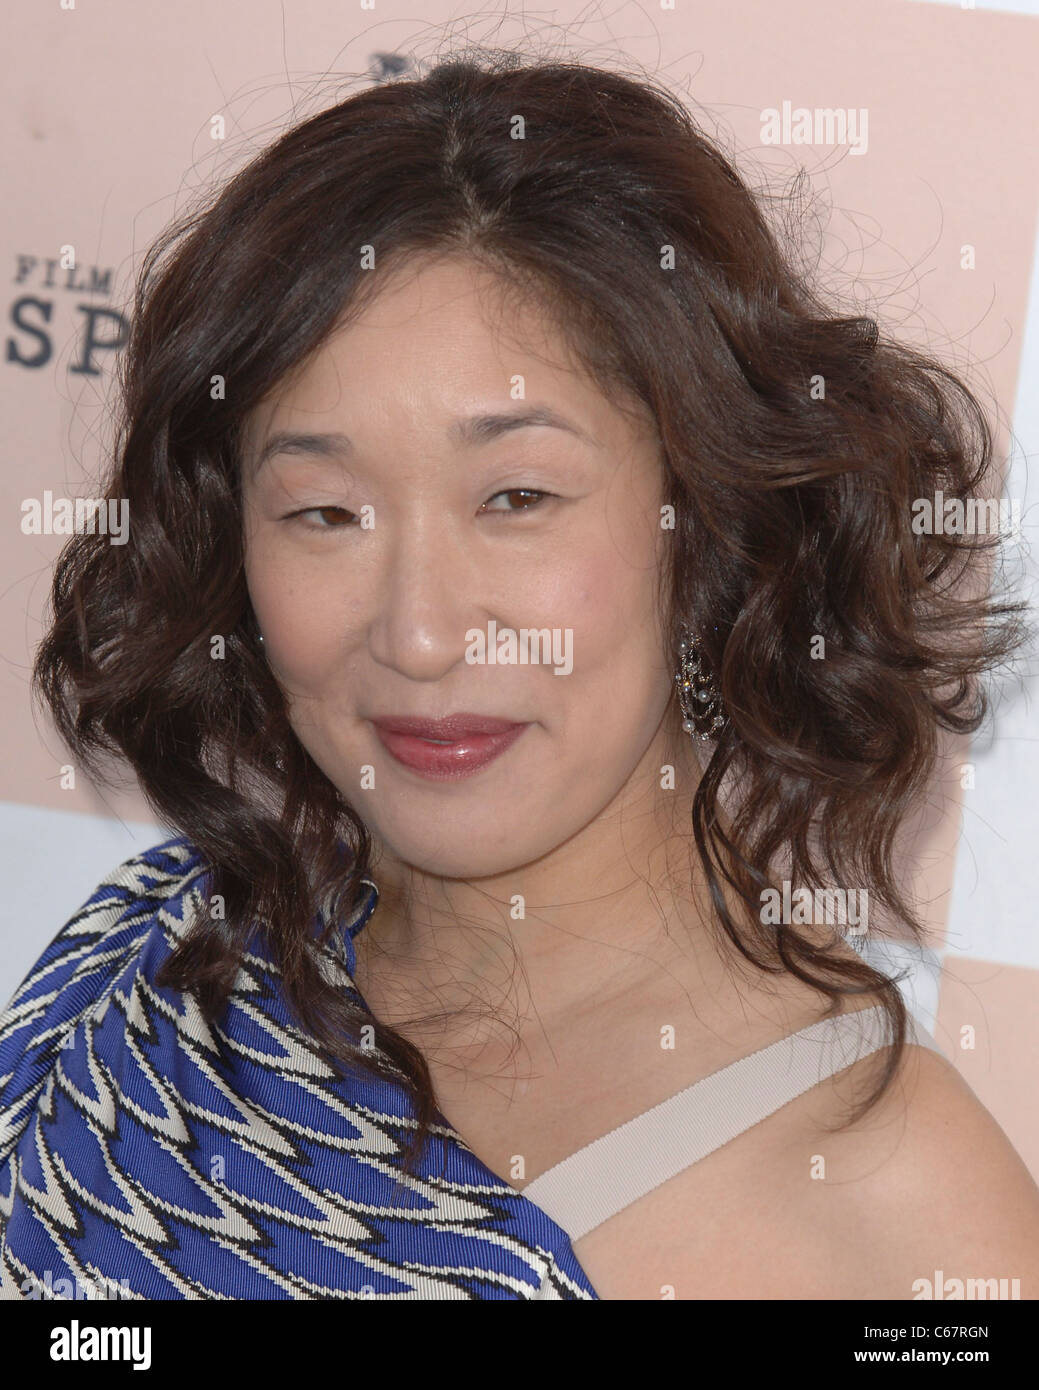 Sandra Oh at arrivals for 2011 Film Independent Spirit Awards - Arrivals, on the beach, Santa Monica, CA February - Stock Image